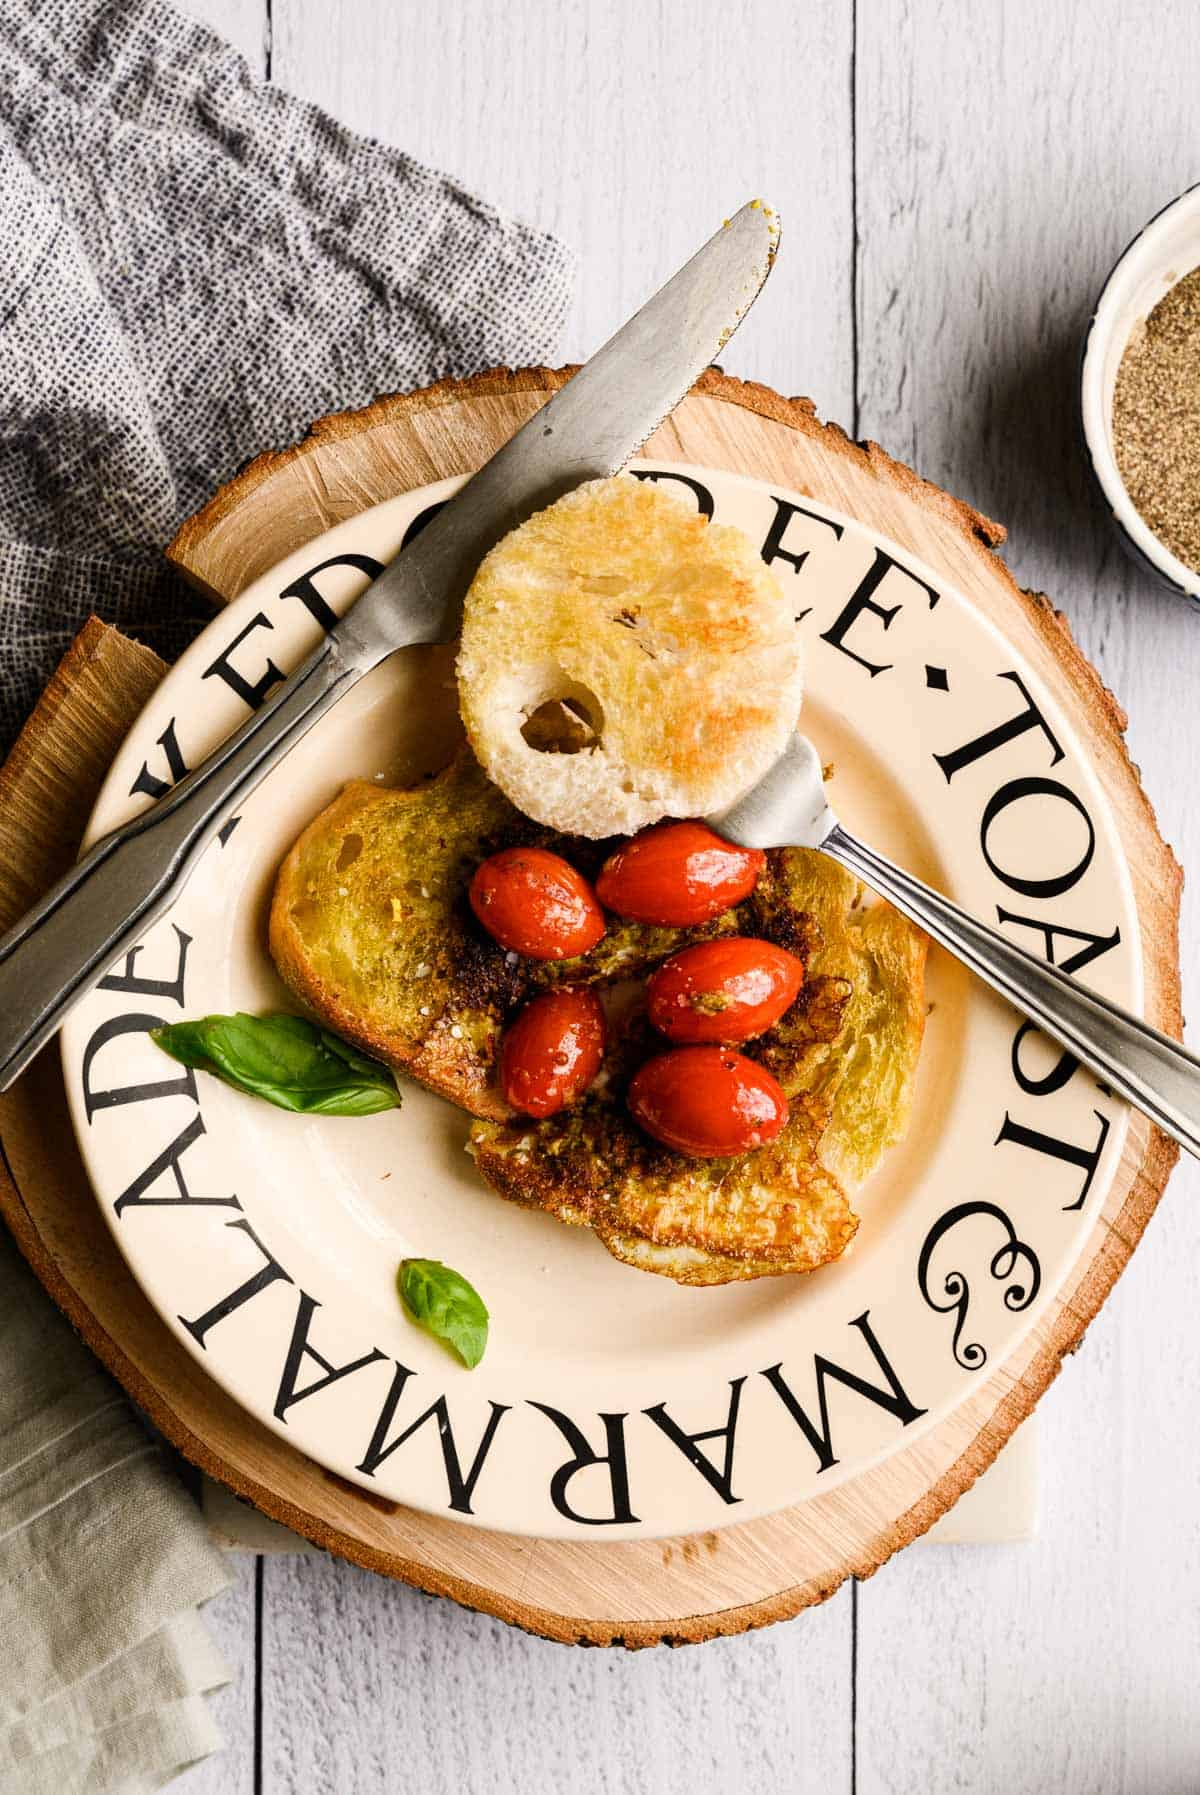 a piece of toasted bread with sauteed tomatoes and a circle of bread on top and basil on the plate